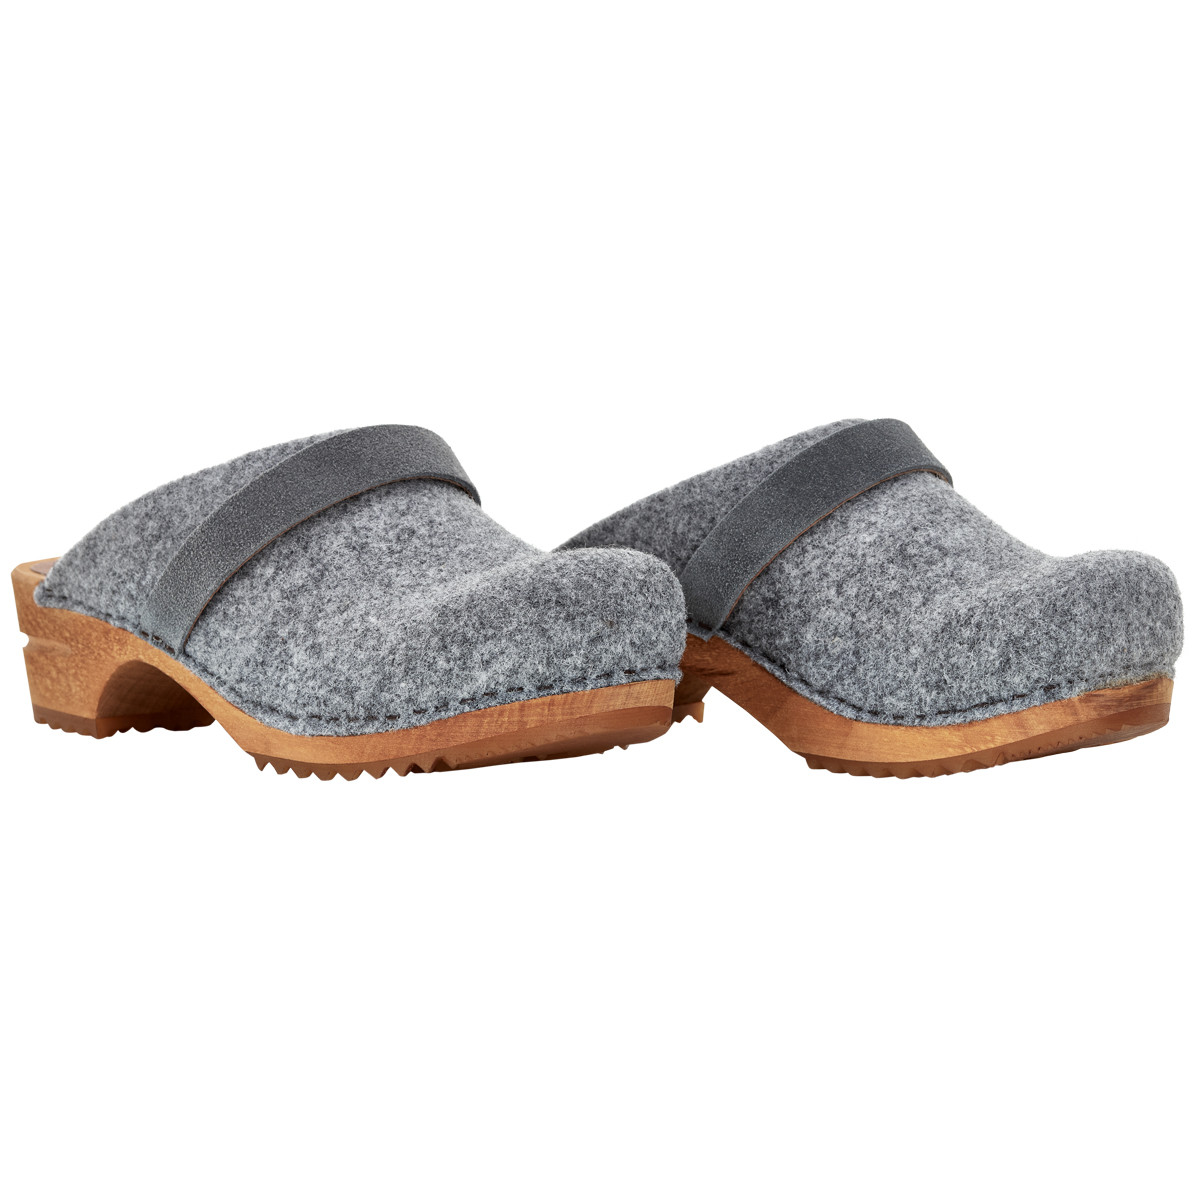 Sanita Hydda Clogs 450090 56